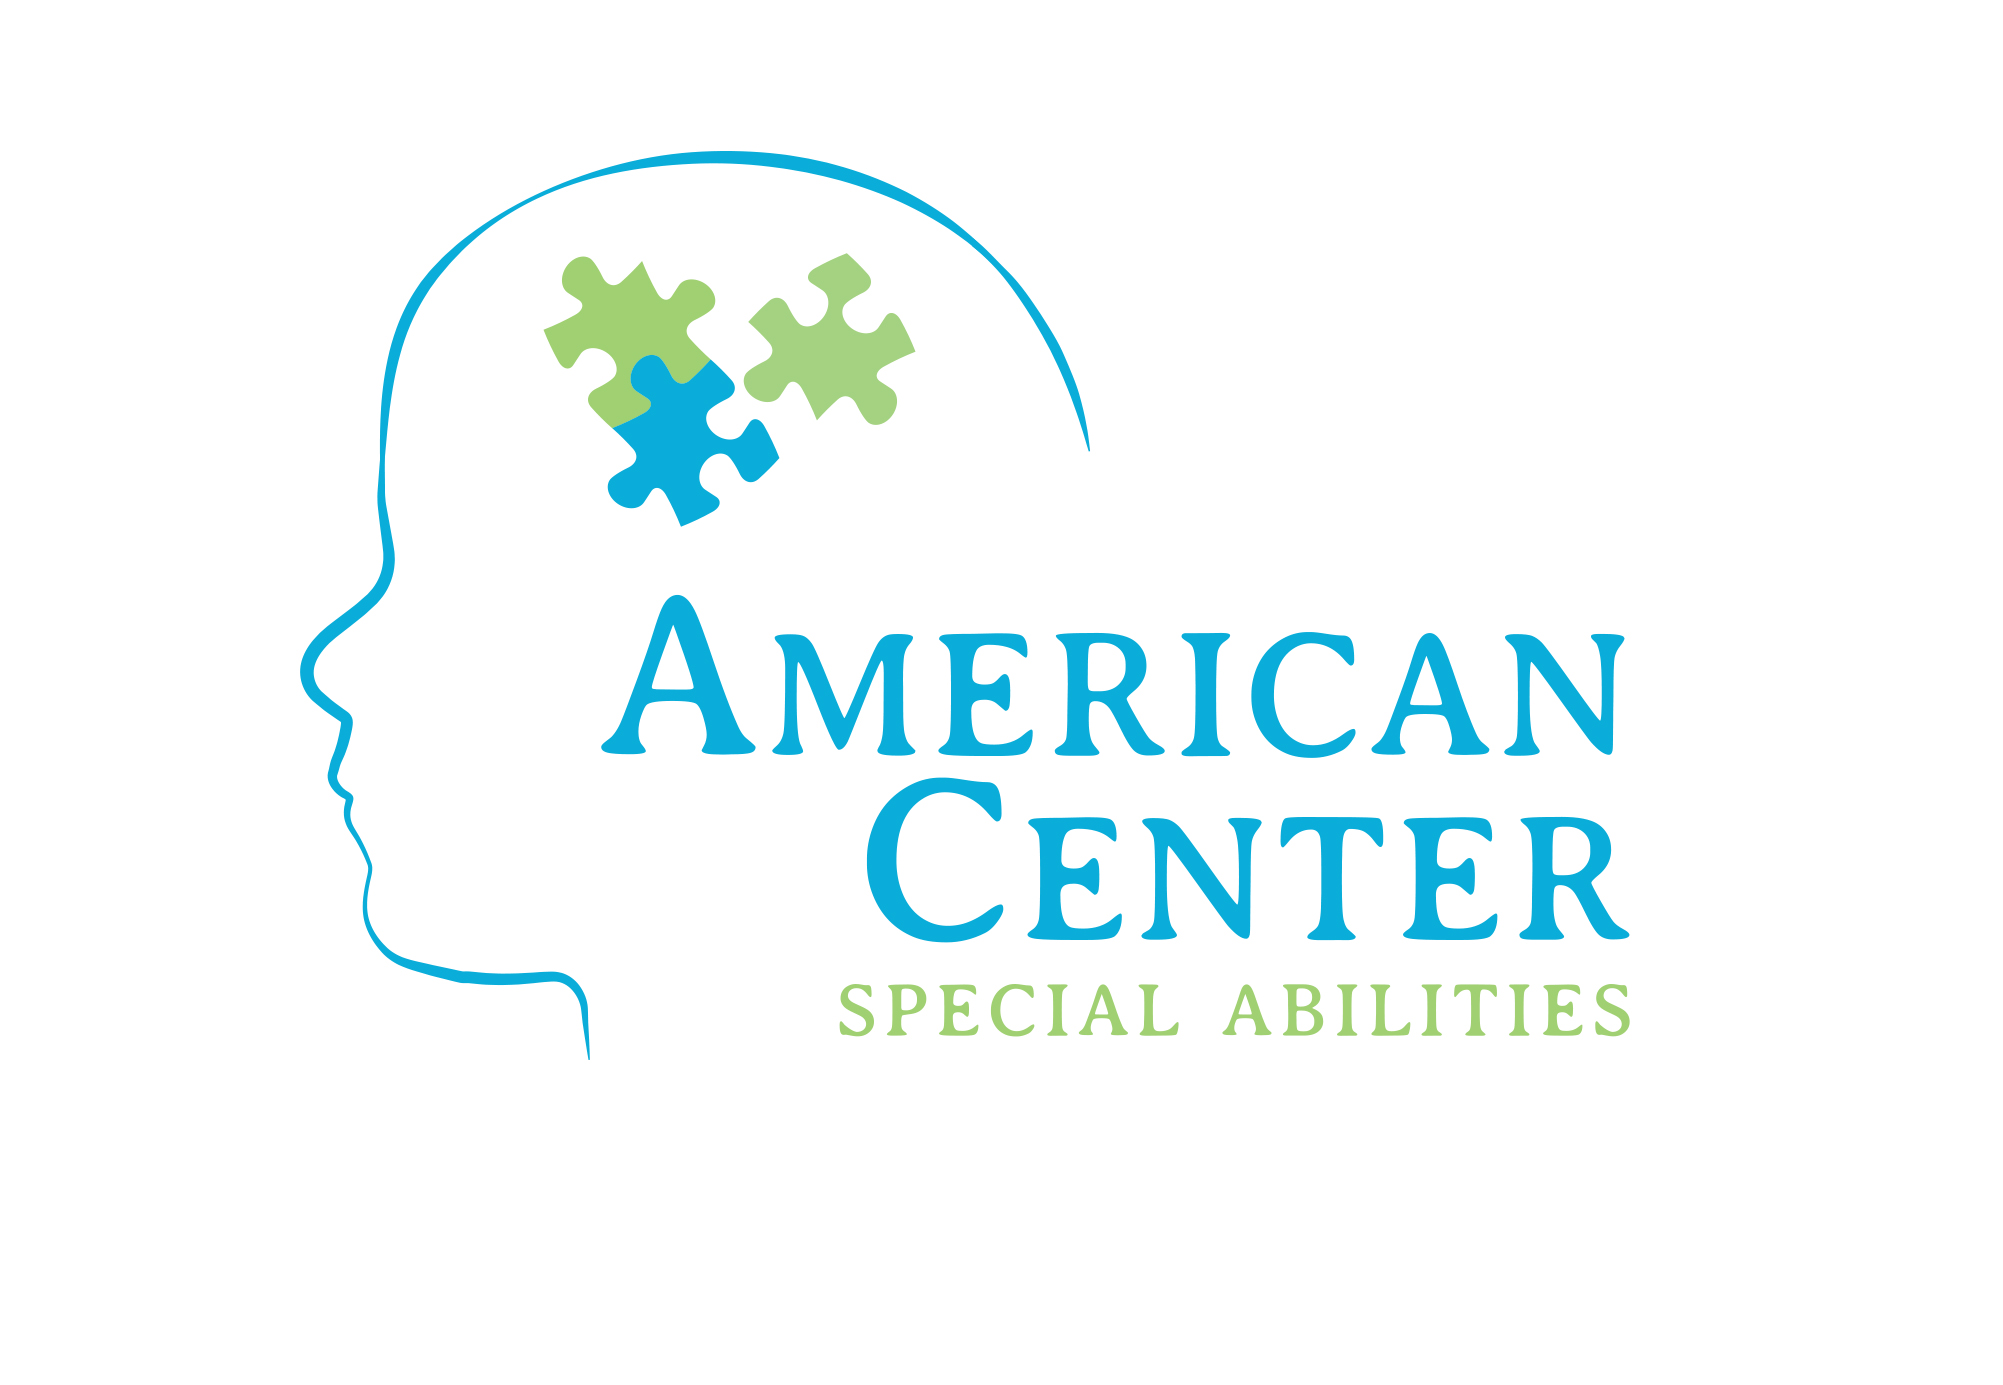 American Center for Special Abilities